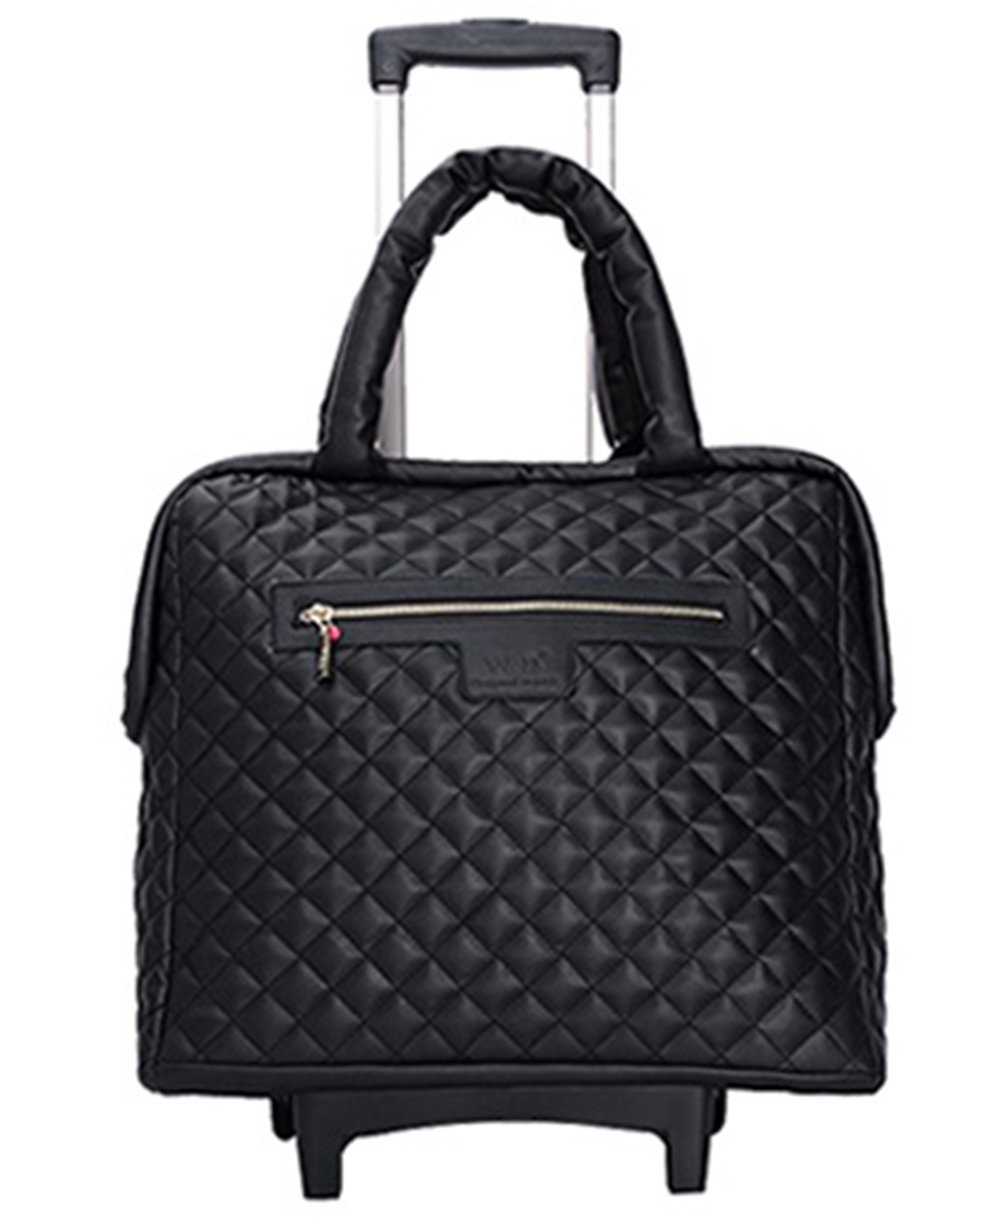 18 inch Fashion Wheeled Rolling Tote Garment Bag suitcase Luggage Spinner Mobile Office for women girls 3 colors (Black) by V&N